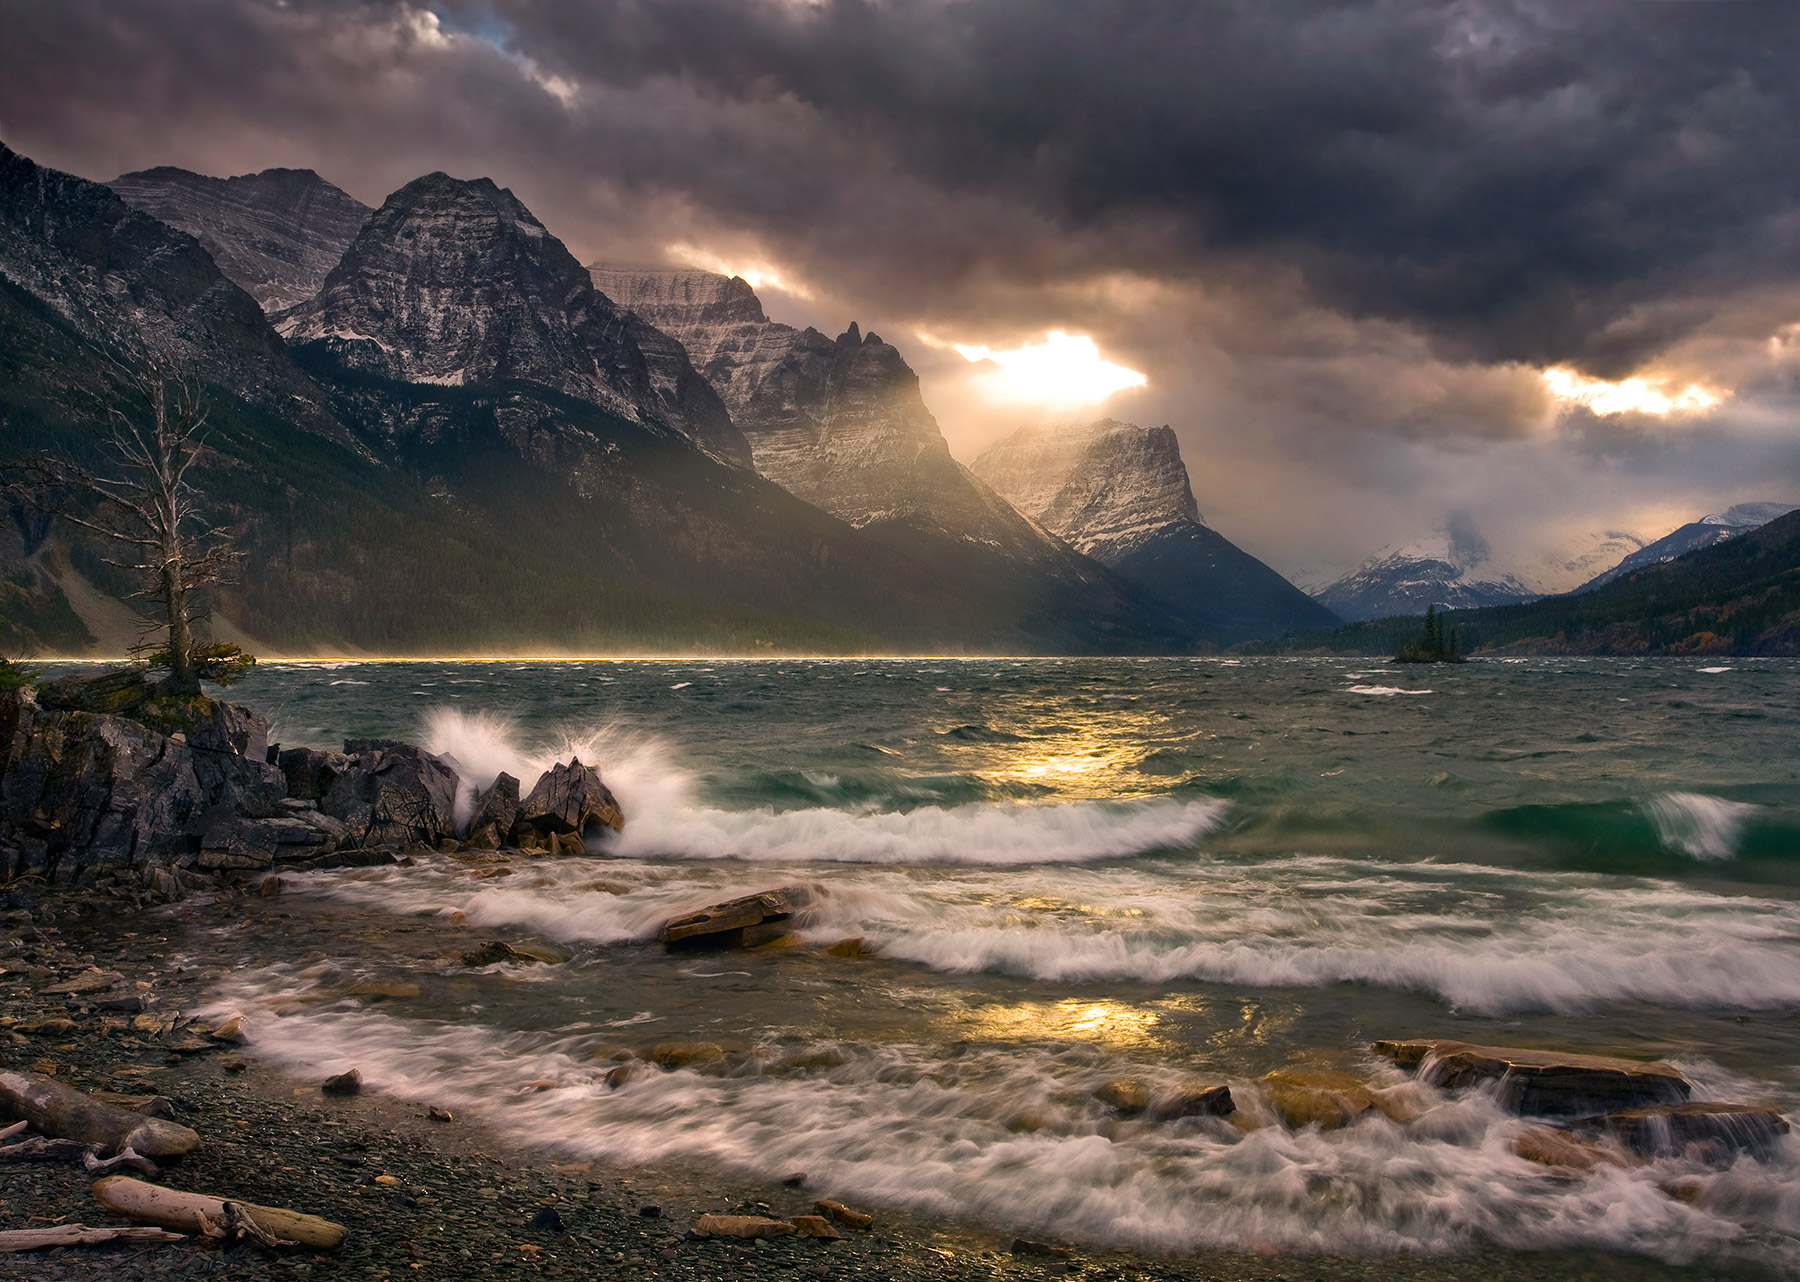 Stunning dramatic light beams through stormy skies illuminating the waters of Saint Mary lake and the waves crashing against...